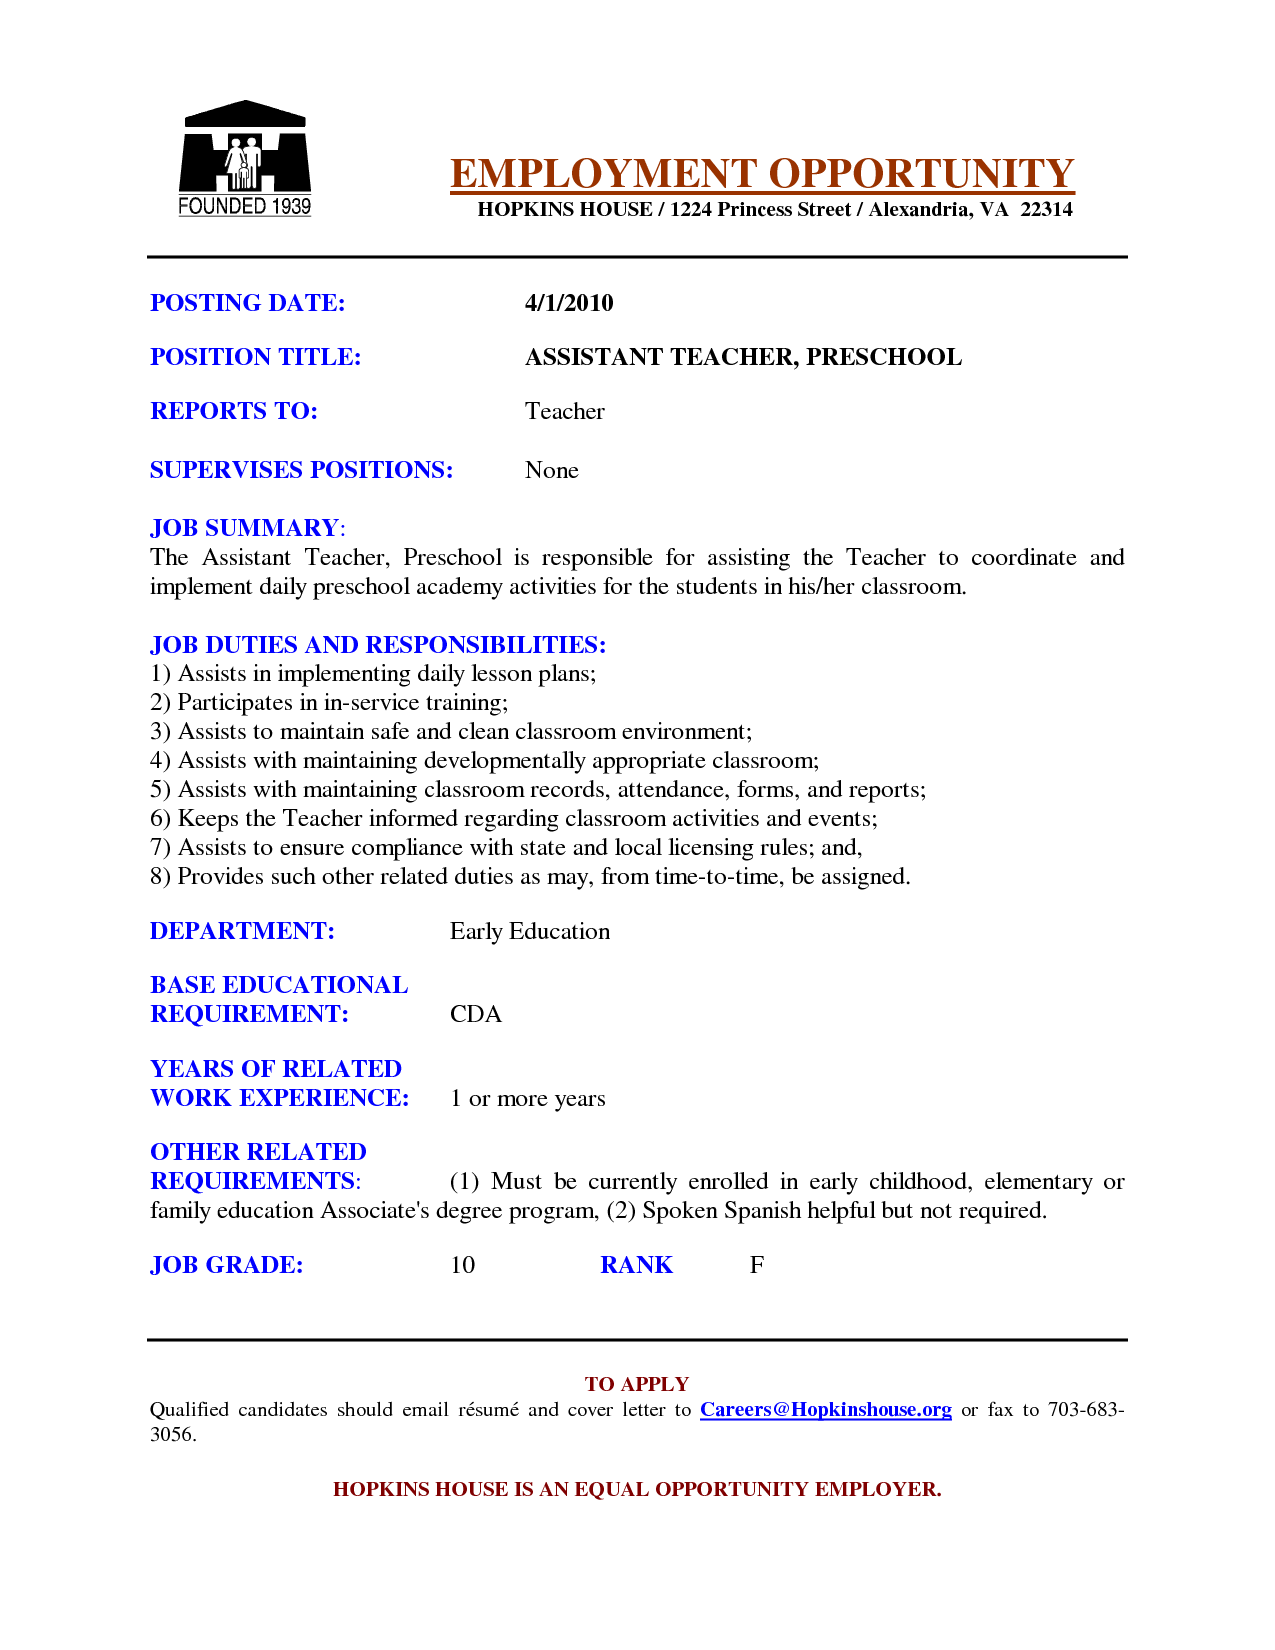 resume Teaching Assistant Resume teacher assistant resume writing httpjobresumesample com420 preschool examples google search